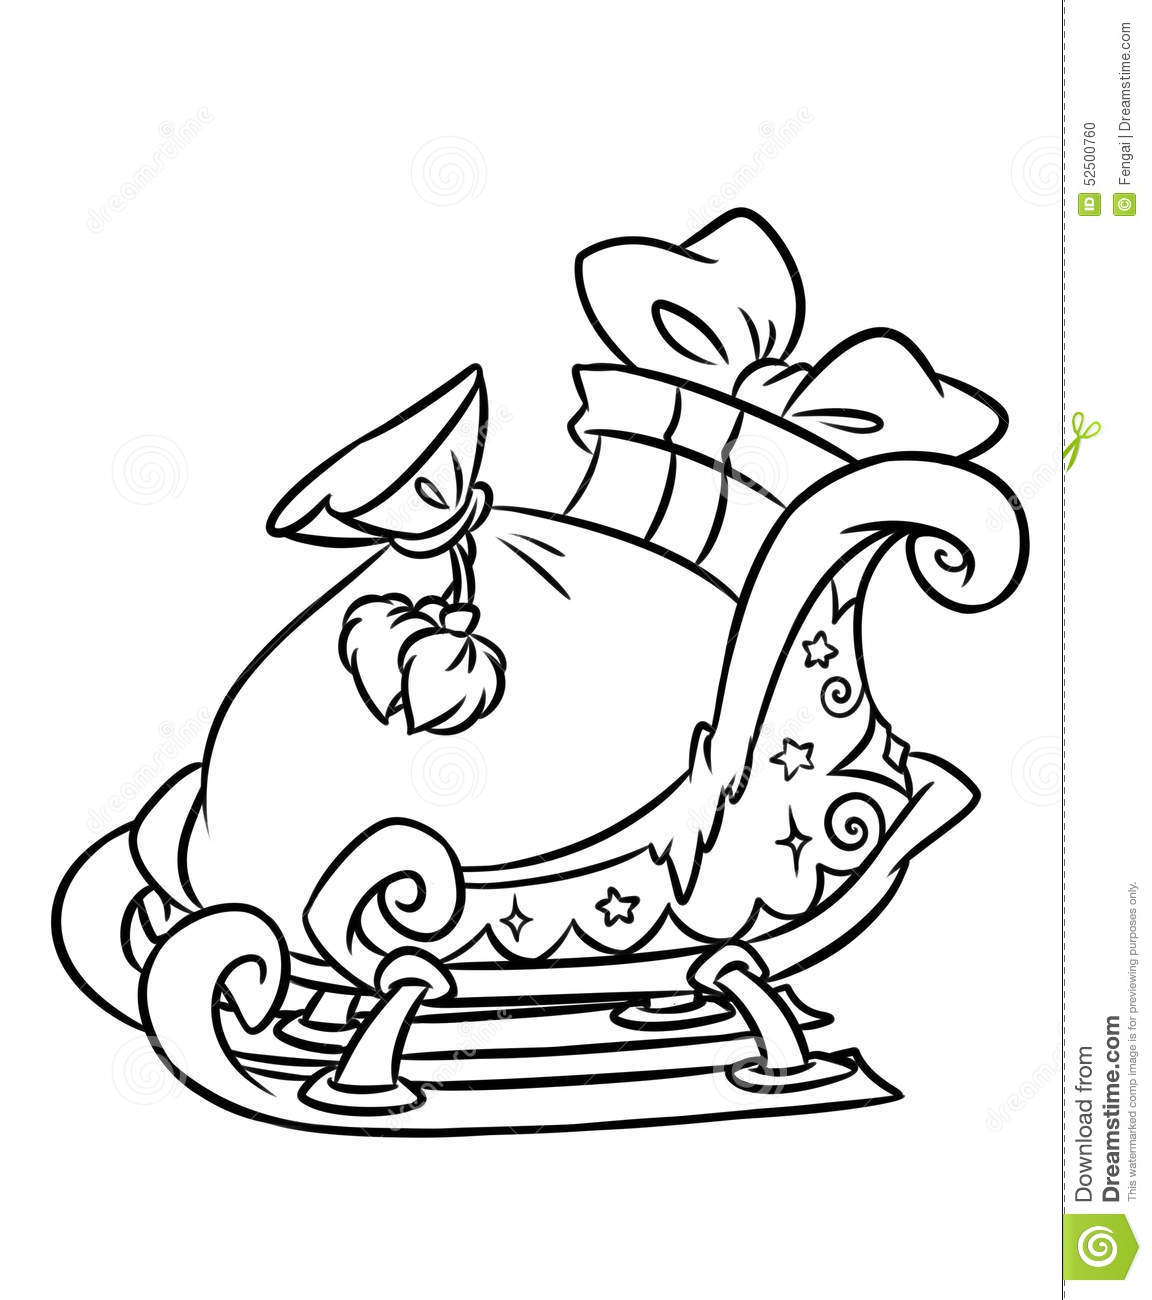 Christmas Coloring Pages Sleigh With Gifts Page Stock Illustration